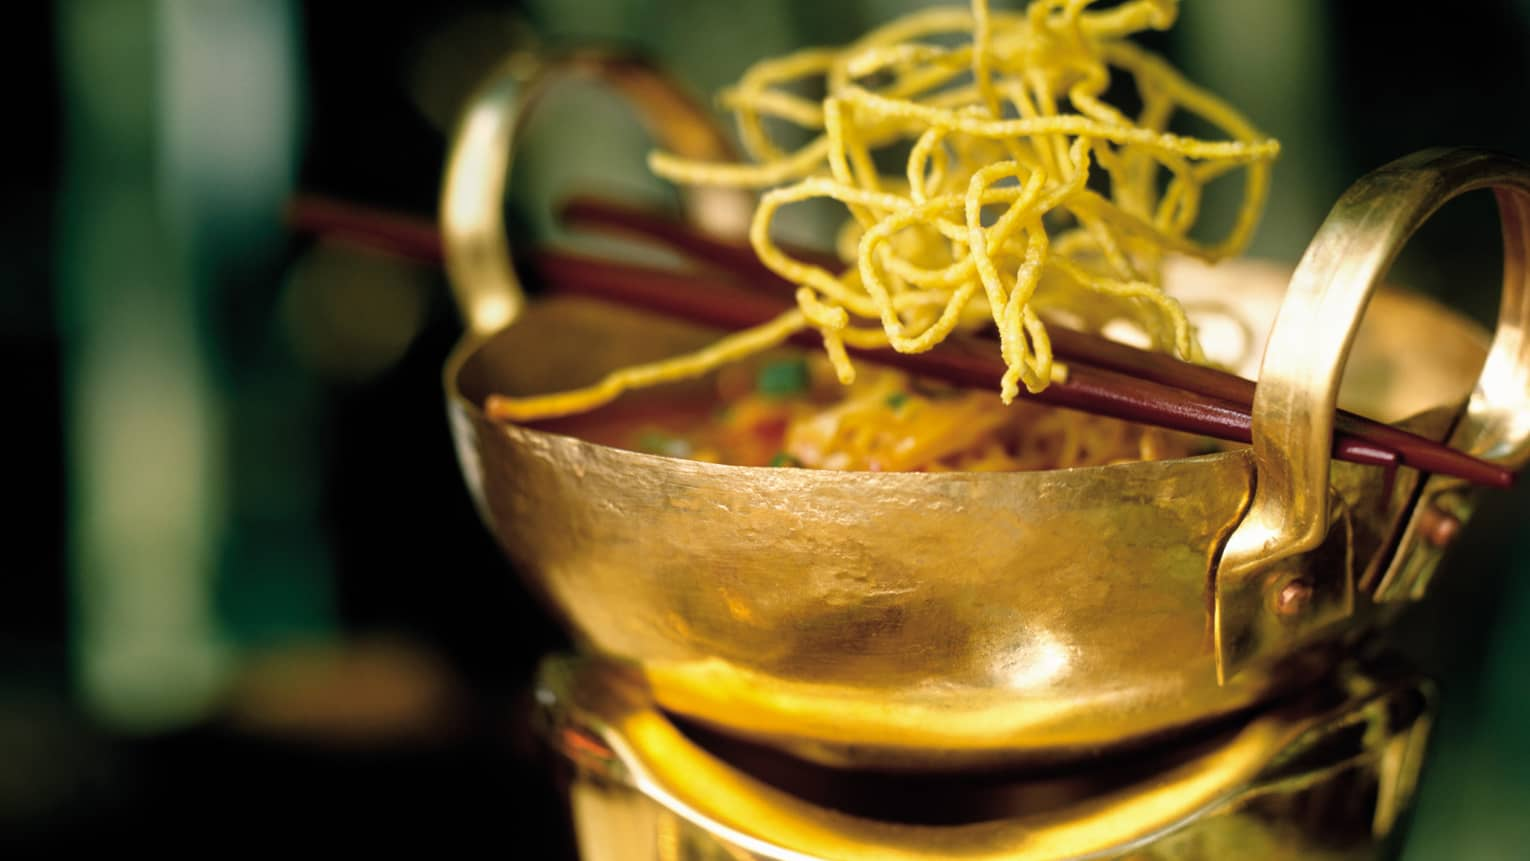 Tom Saab Gai Laotian chicken soup in gold bowl topped with fried noodles, chopsticks